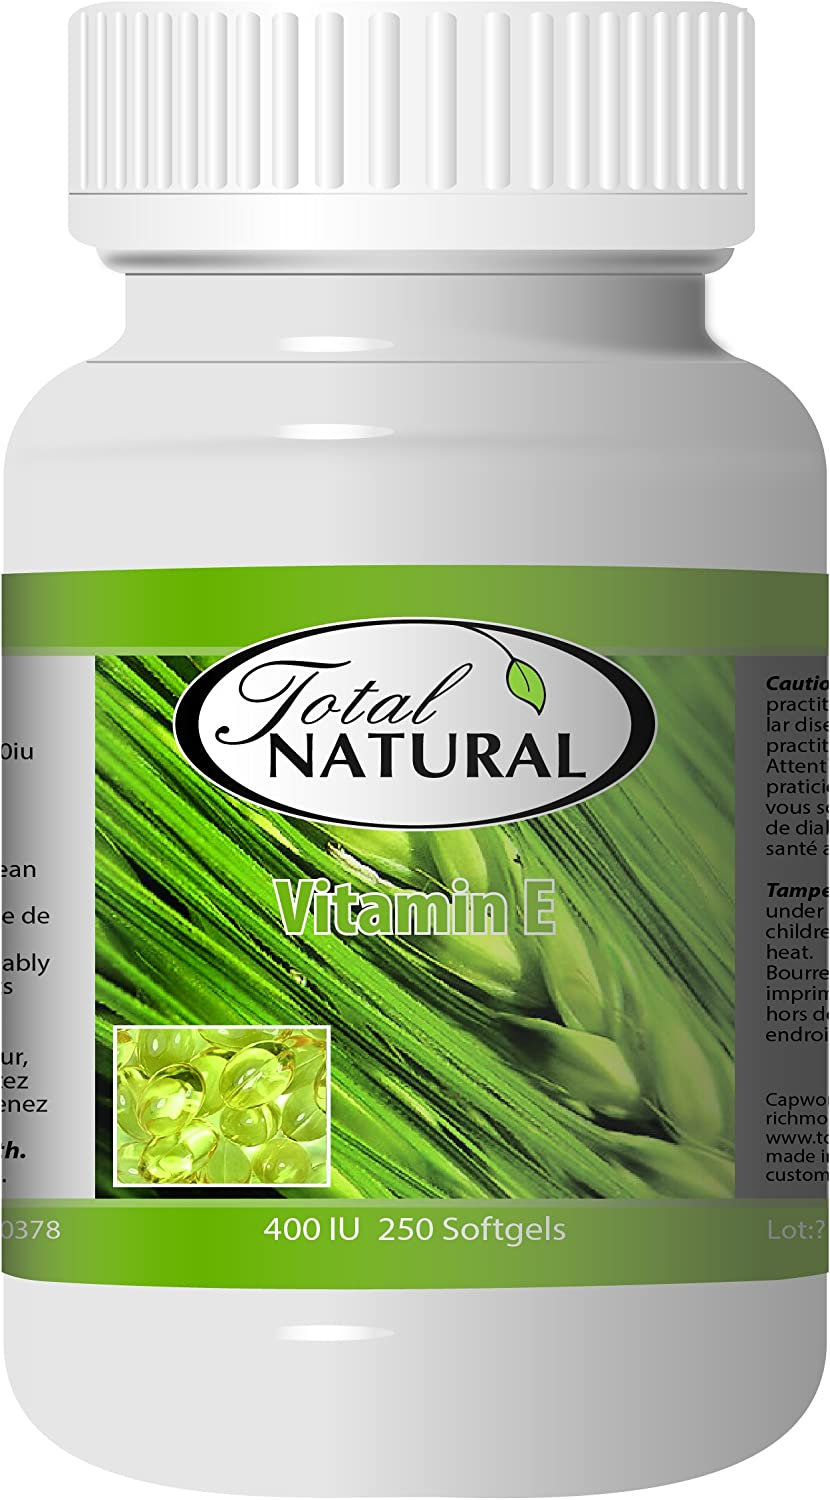 Total It Brand new is very popular Natural Vitamin E 400UI 2 Bottles by 180s